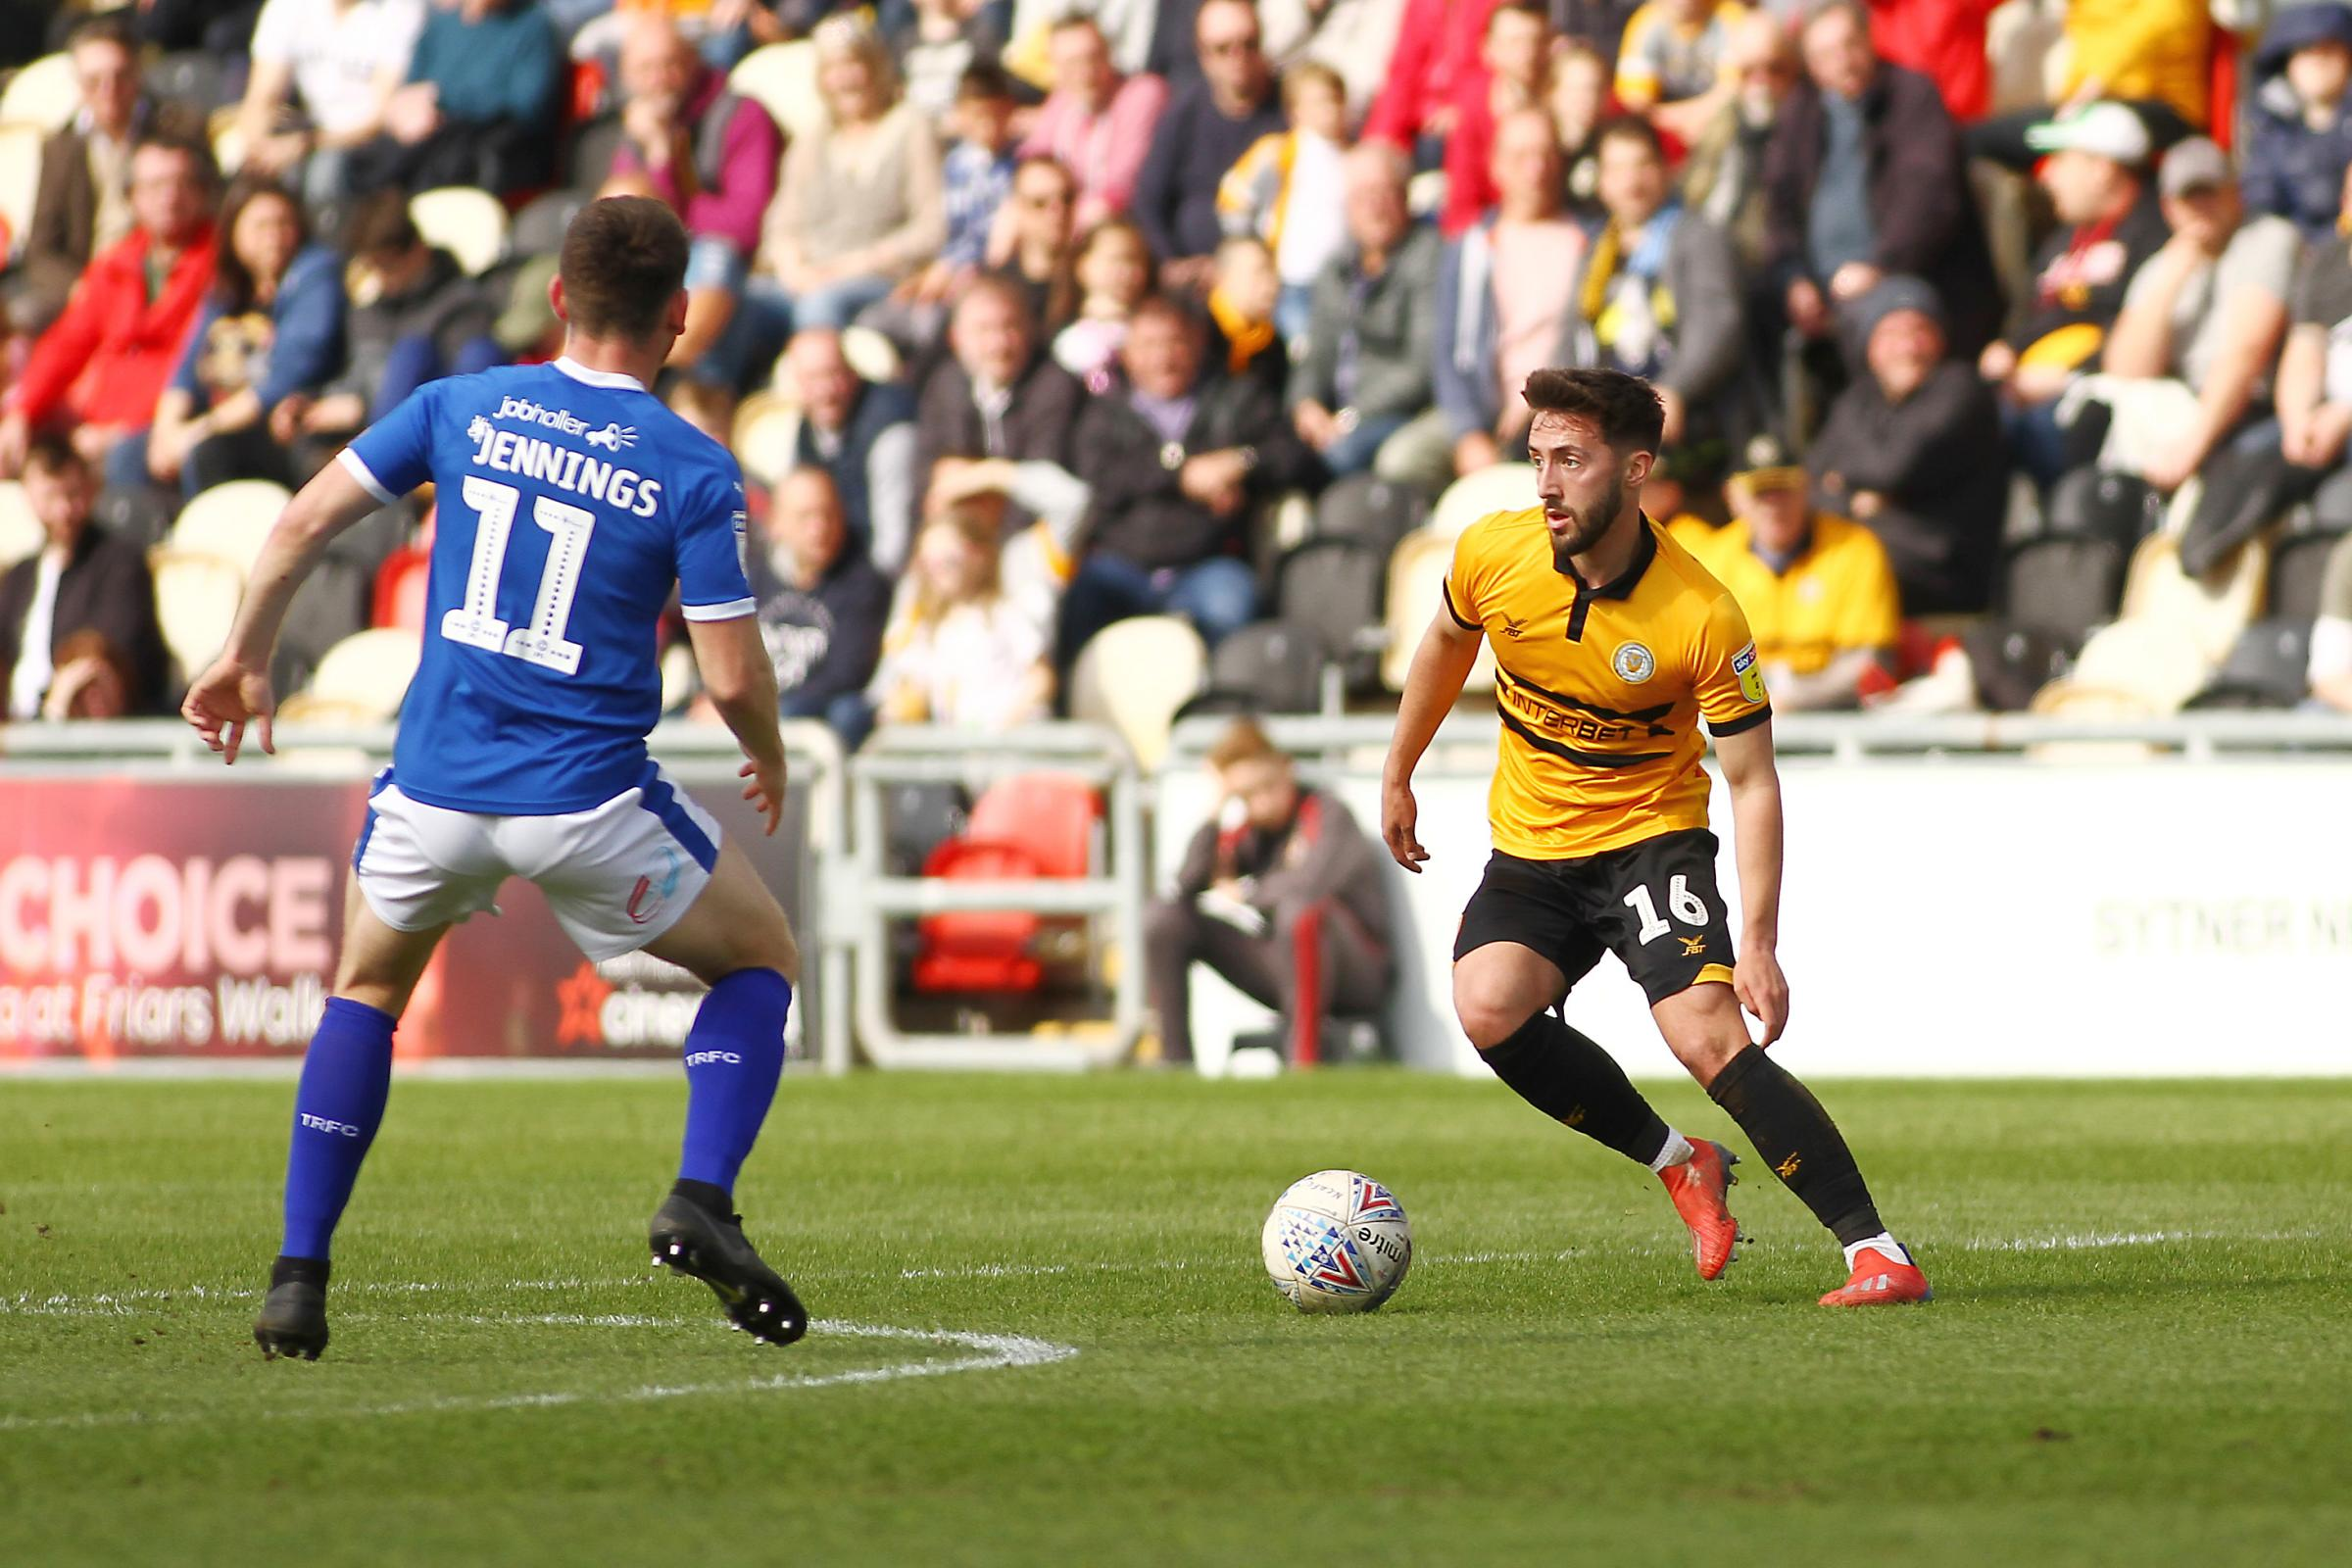 STALEMATE: Josh Sheehan in action for Newport County against Tranmere Rovers. Pictures: Huw Evans Agency